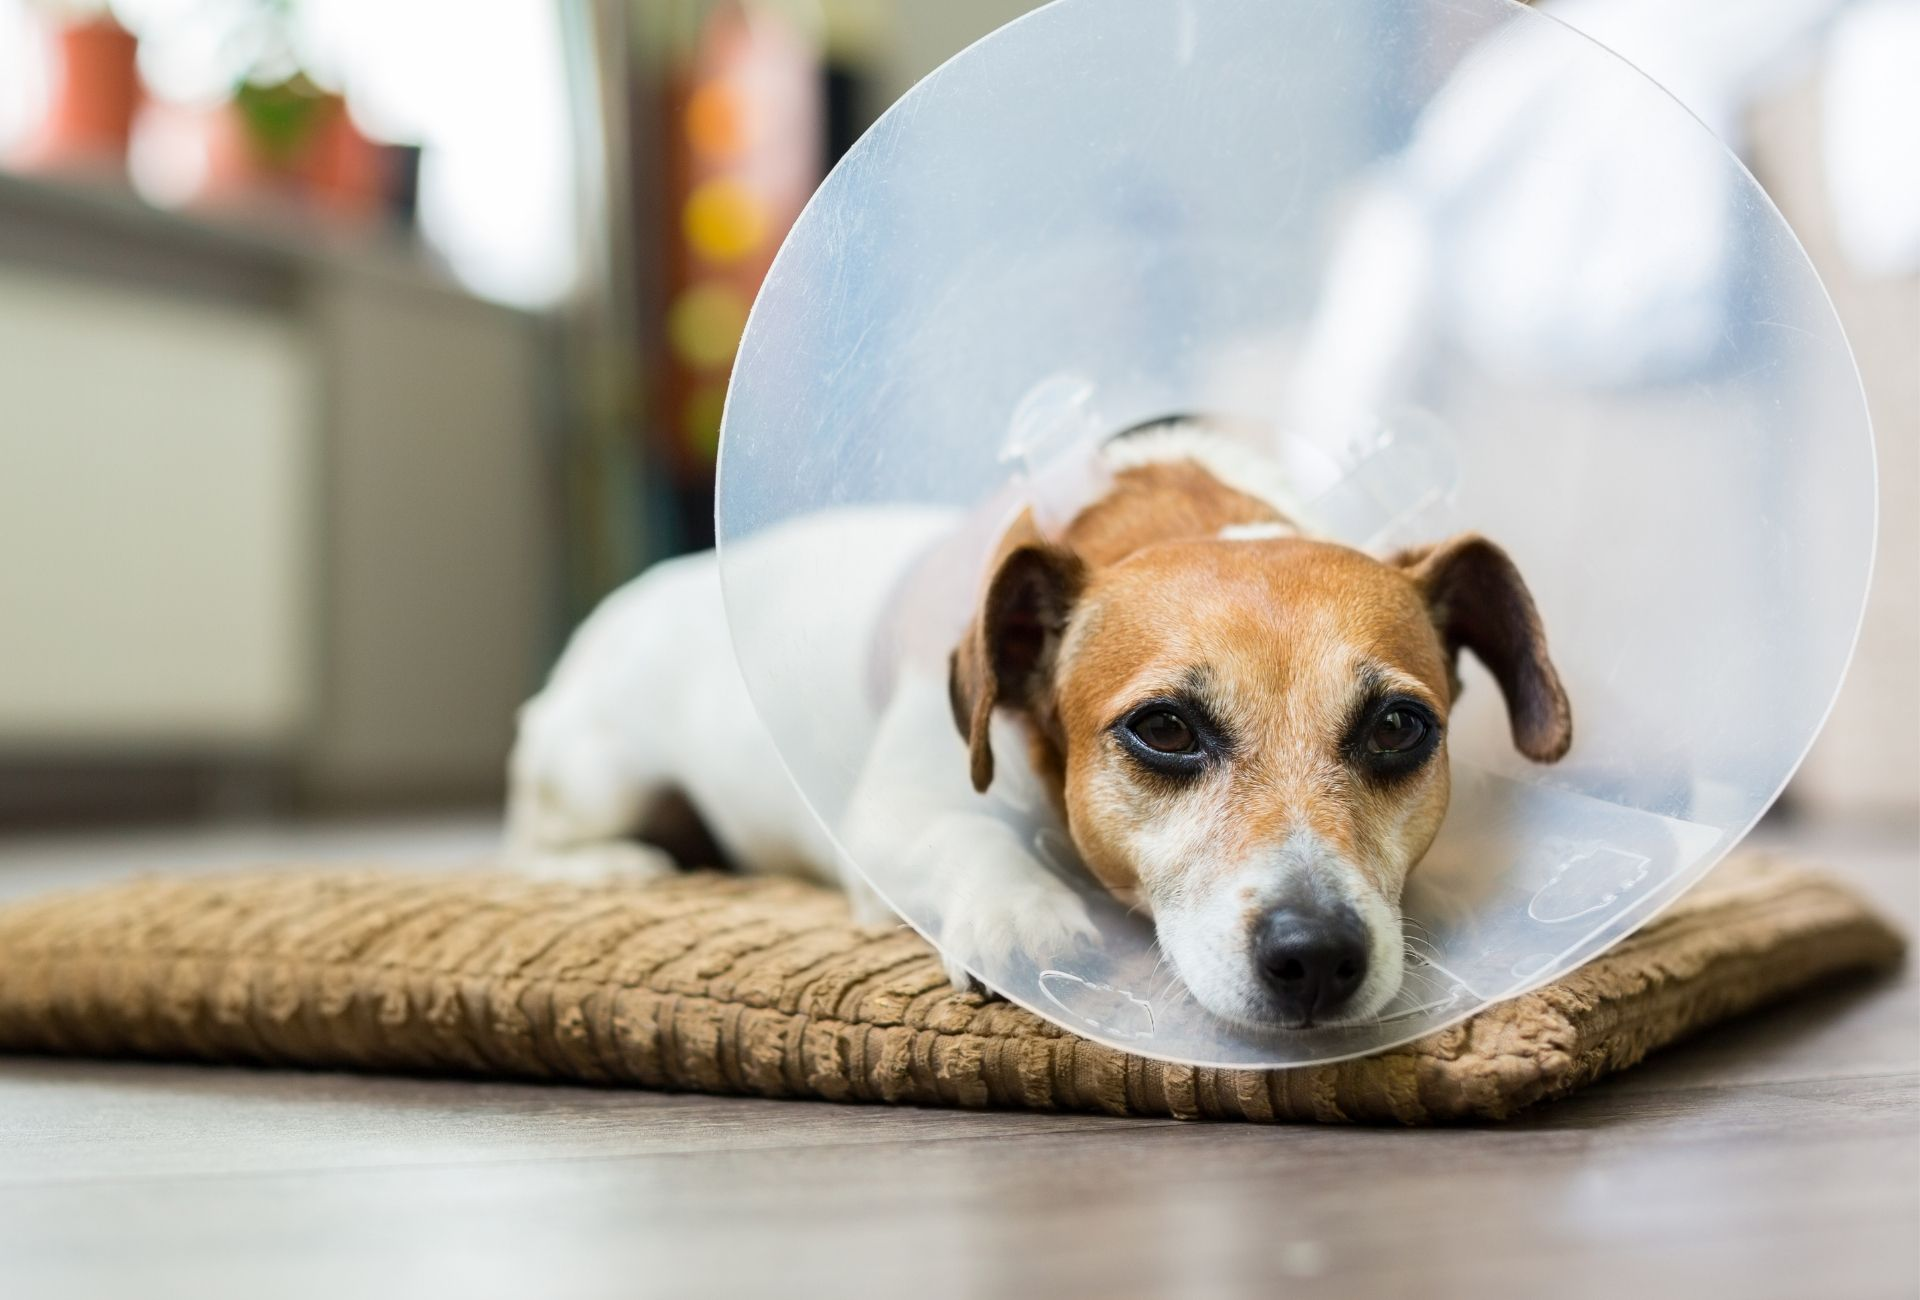 Dog lying on a mat with a plastic cone.